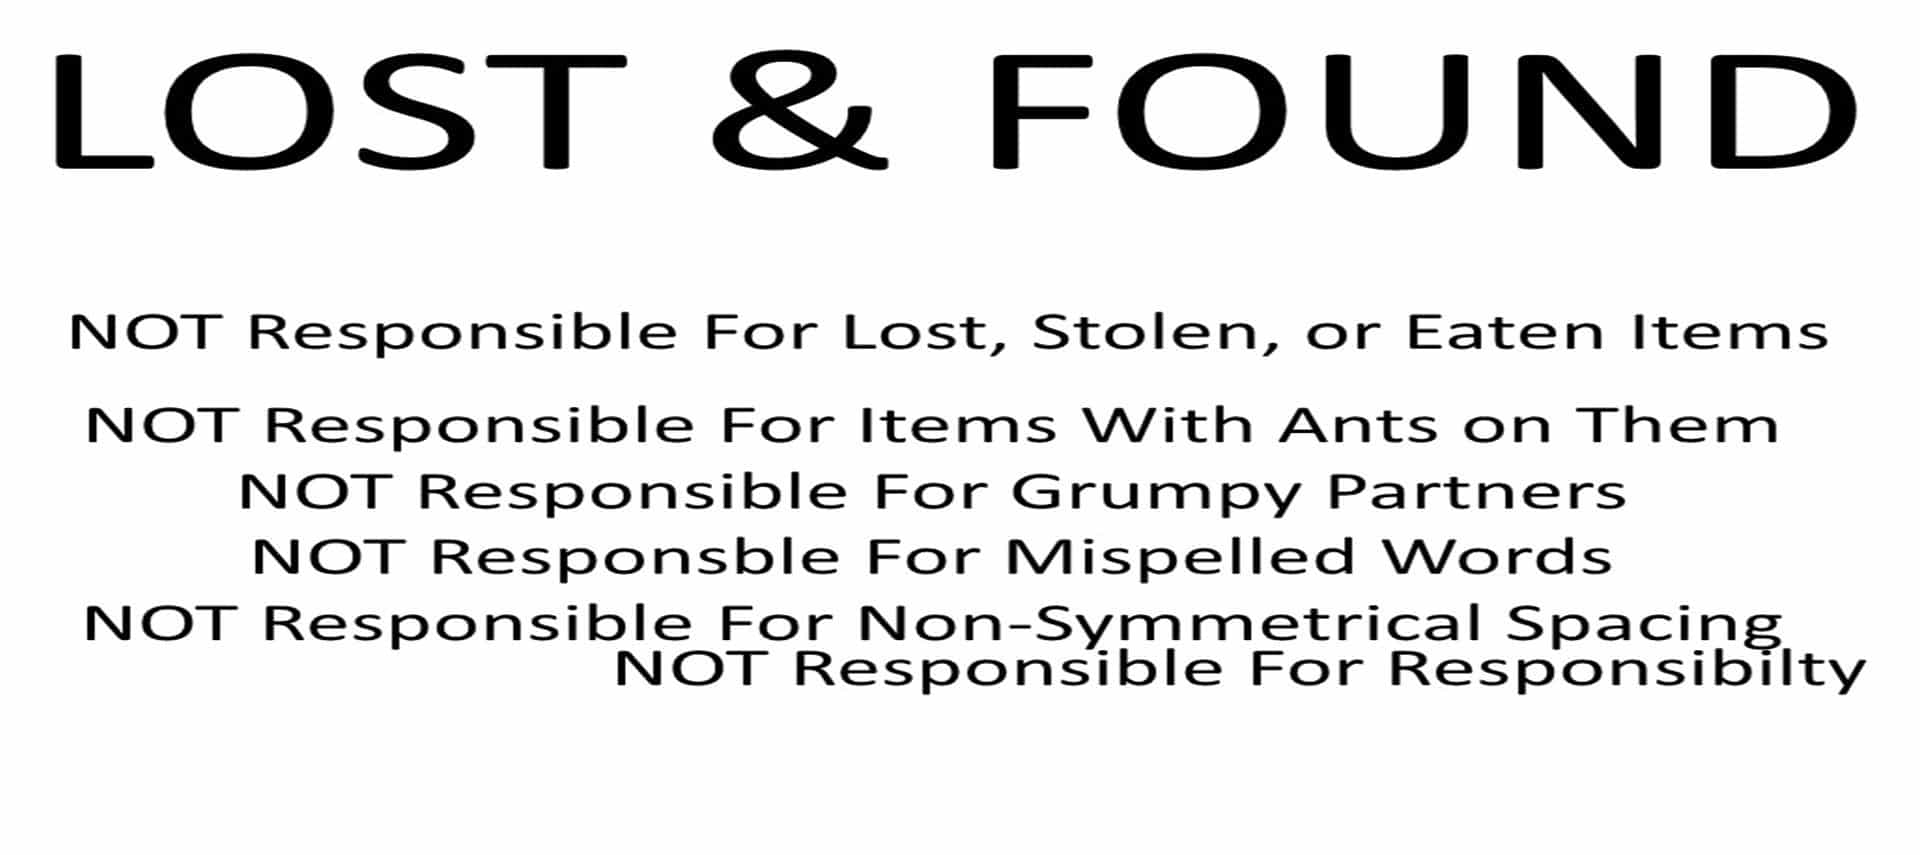 Humorous Lost & Found sign in black and white